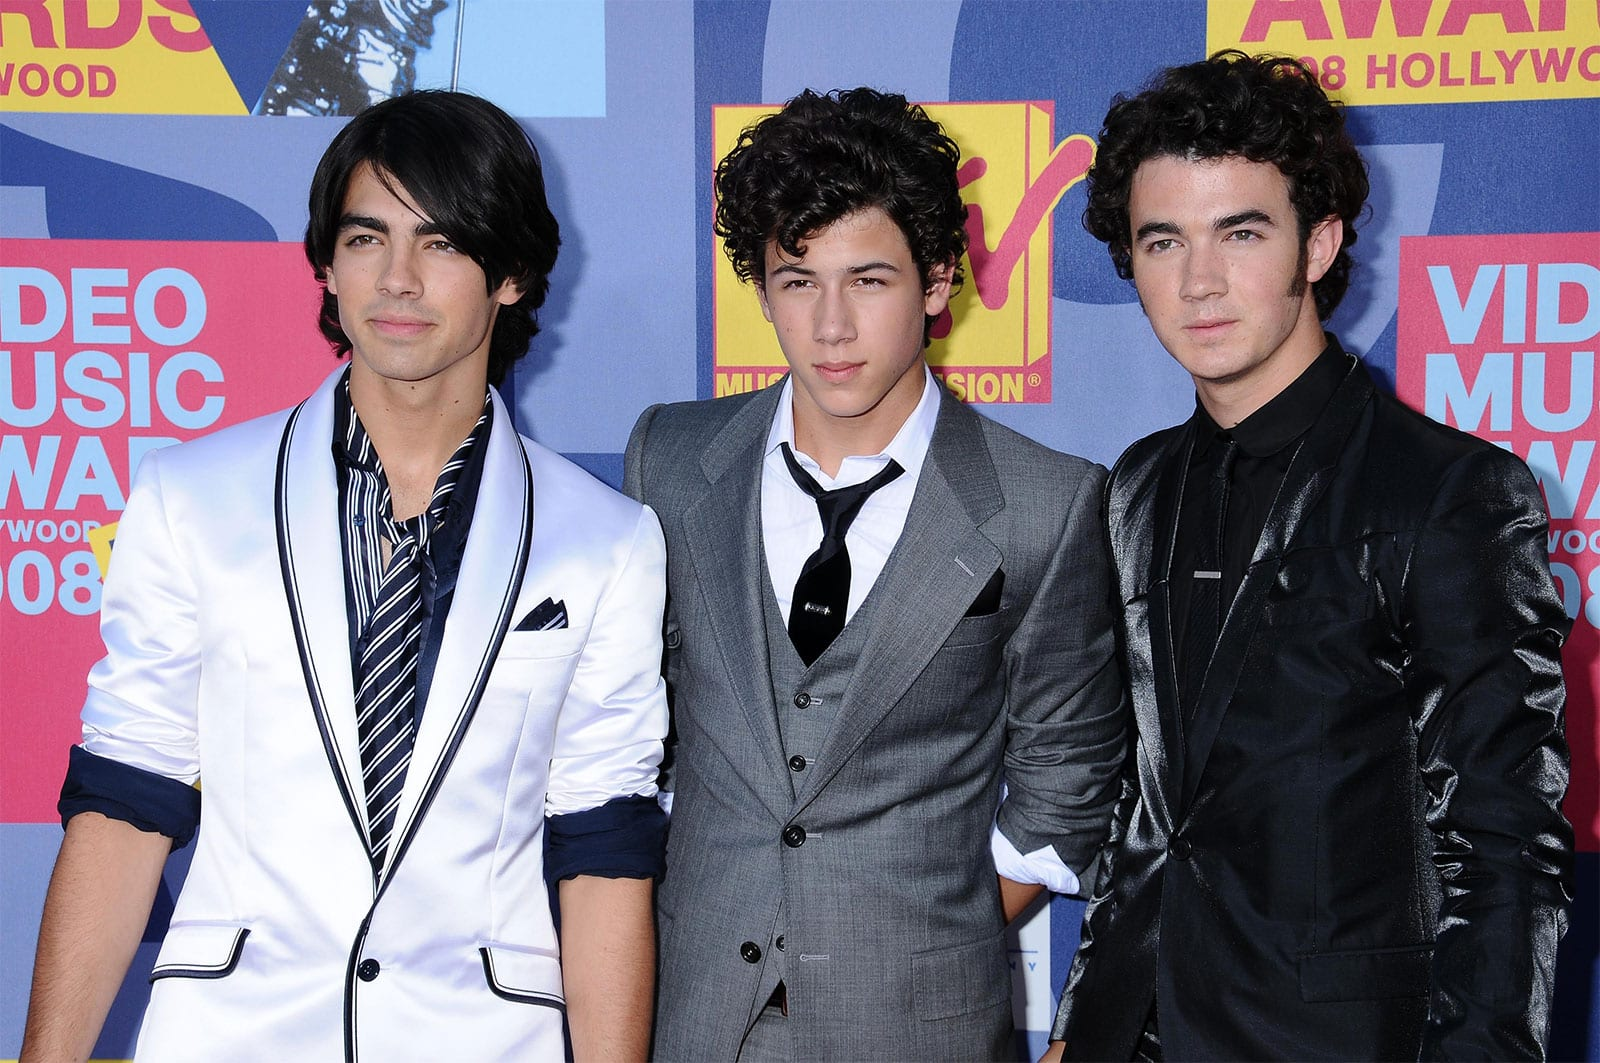 When Did The Jonas Brothers Break Up?